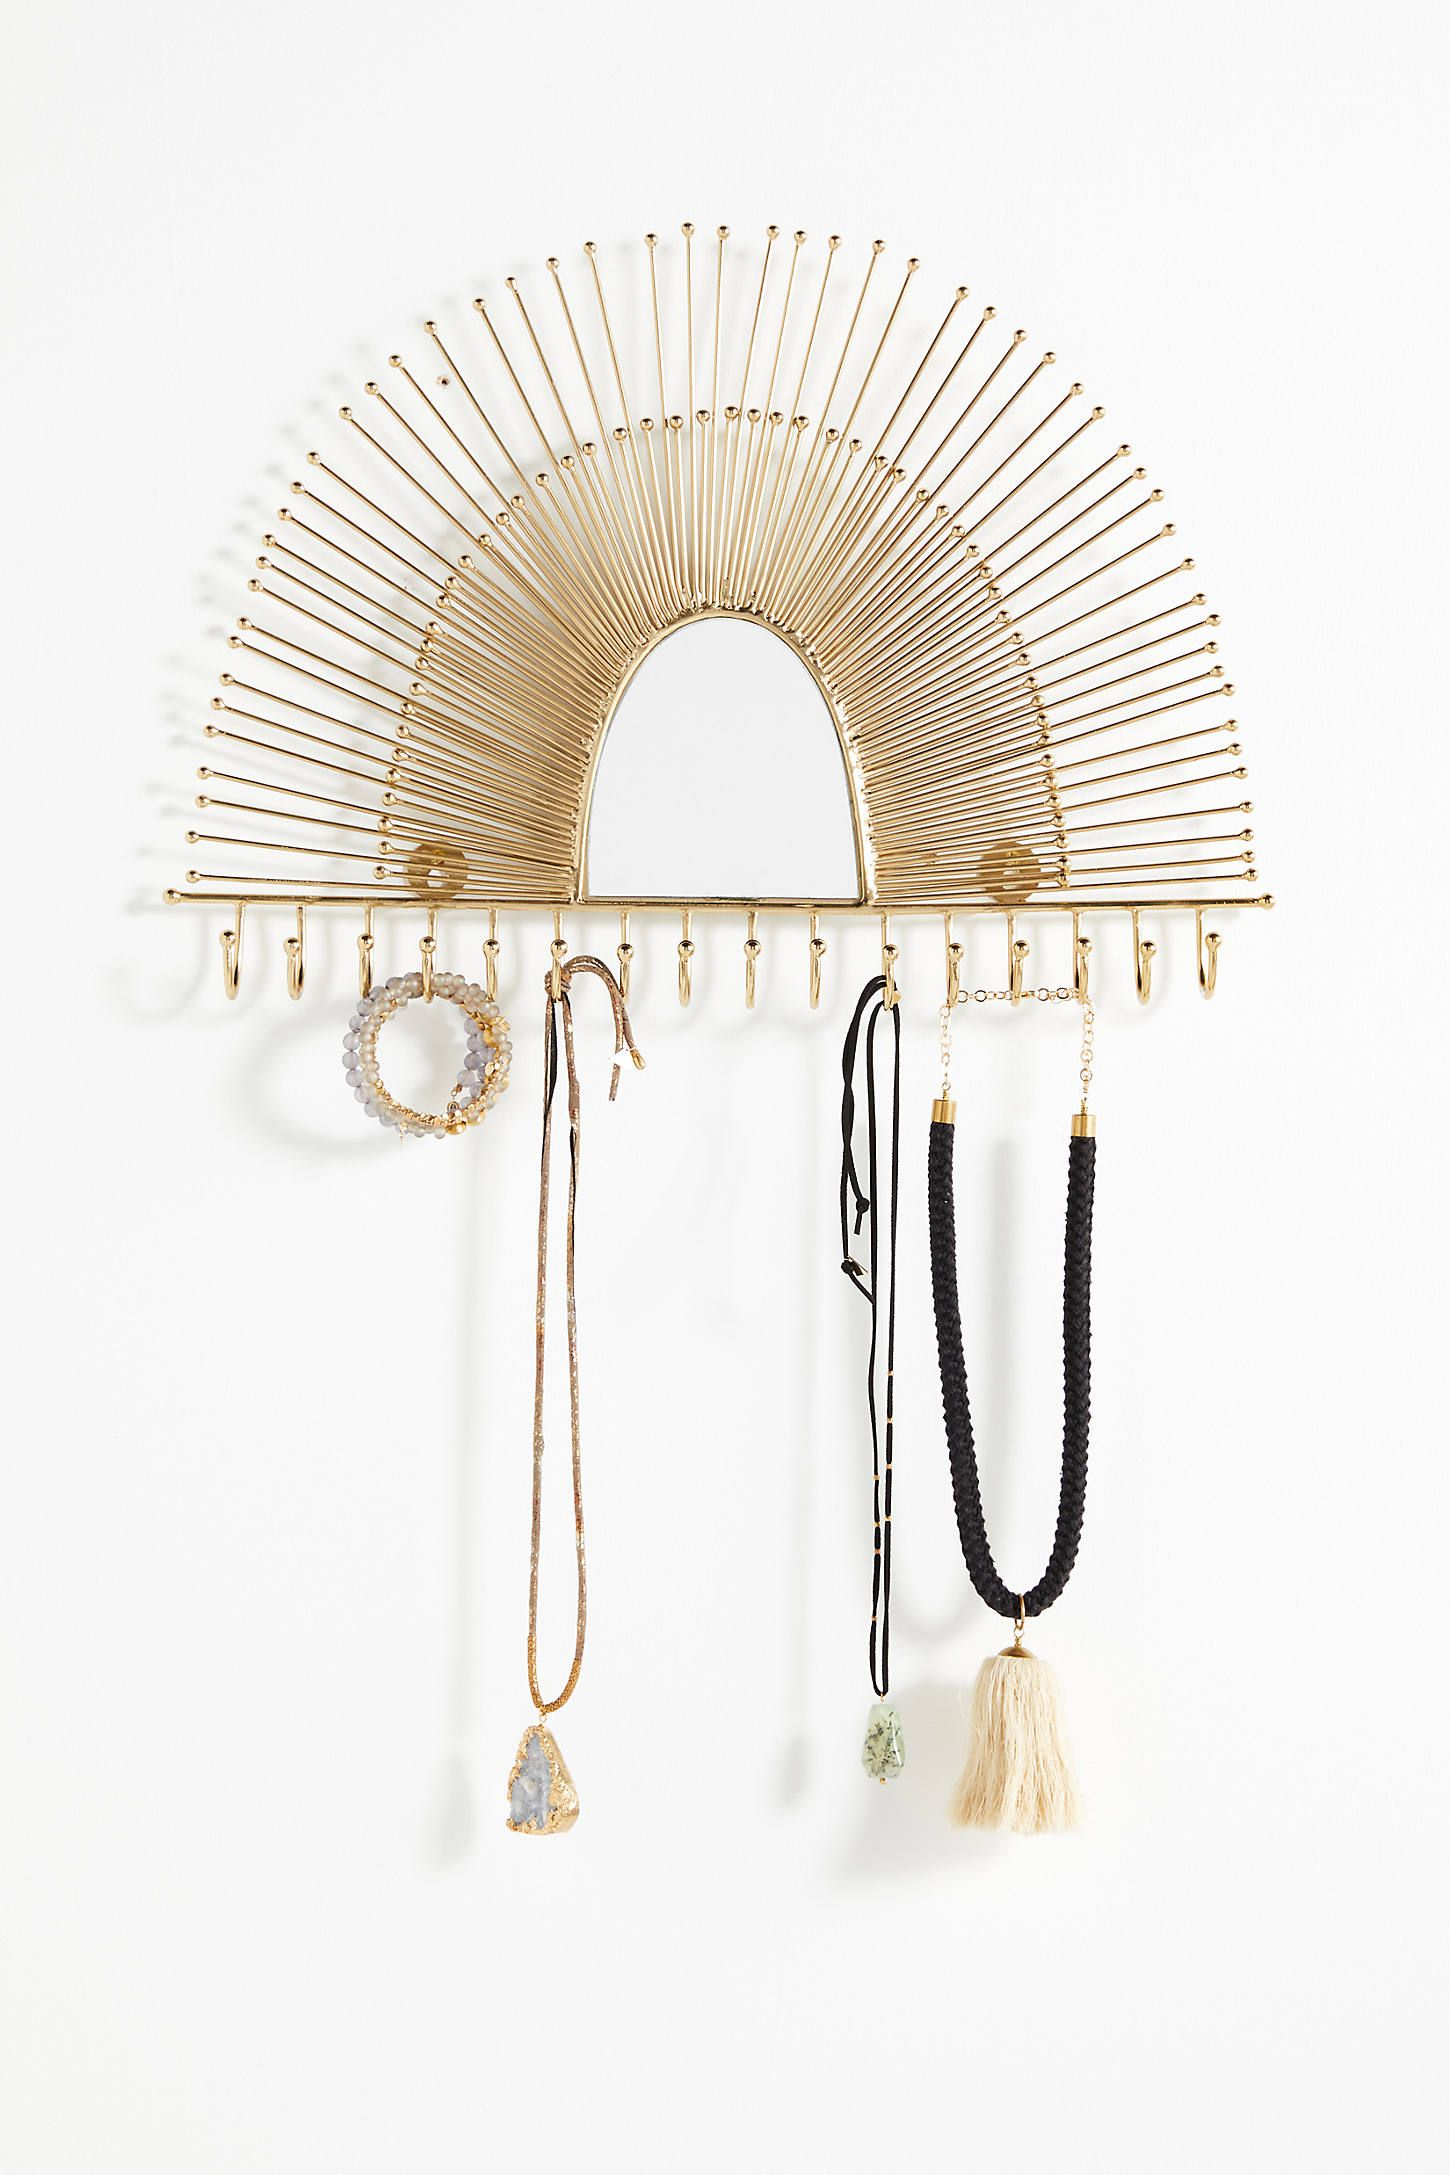 Naomi Jewelry Rack is part of Precious jewelry, Jewelry rack, Jewelry pieces, Modern jewellery design, Childrens jewelry, Jewelry armoire - Shop the Naomi Jewelry Rack at Anthropologie today  Read customer reviews, discover product details and more